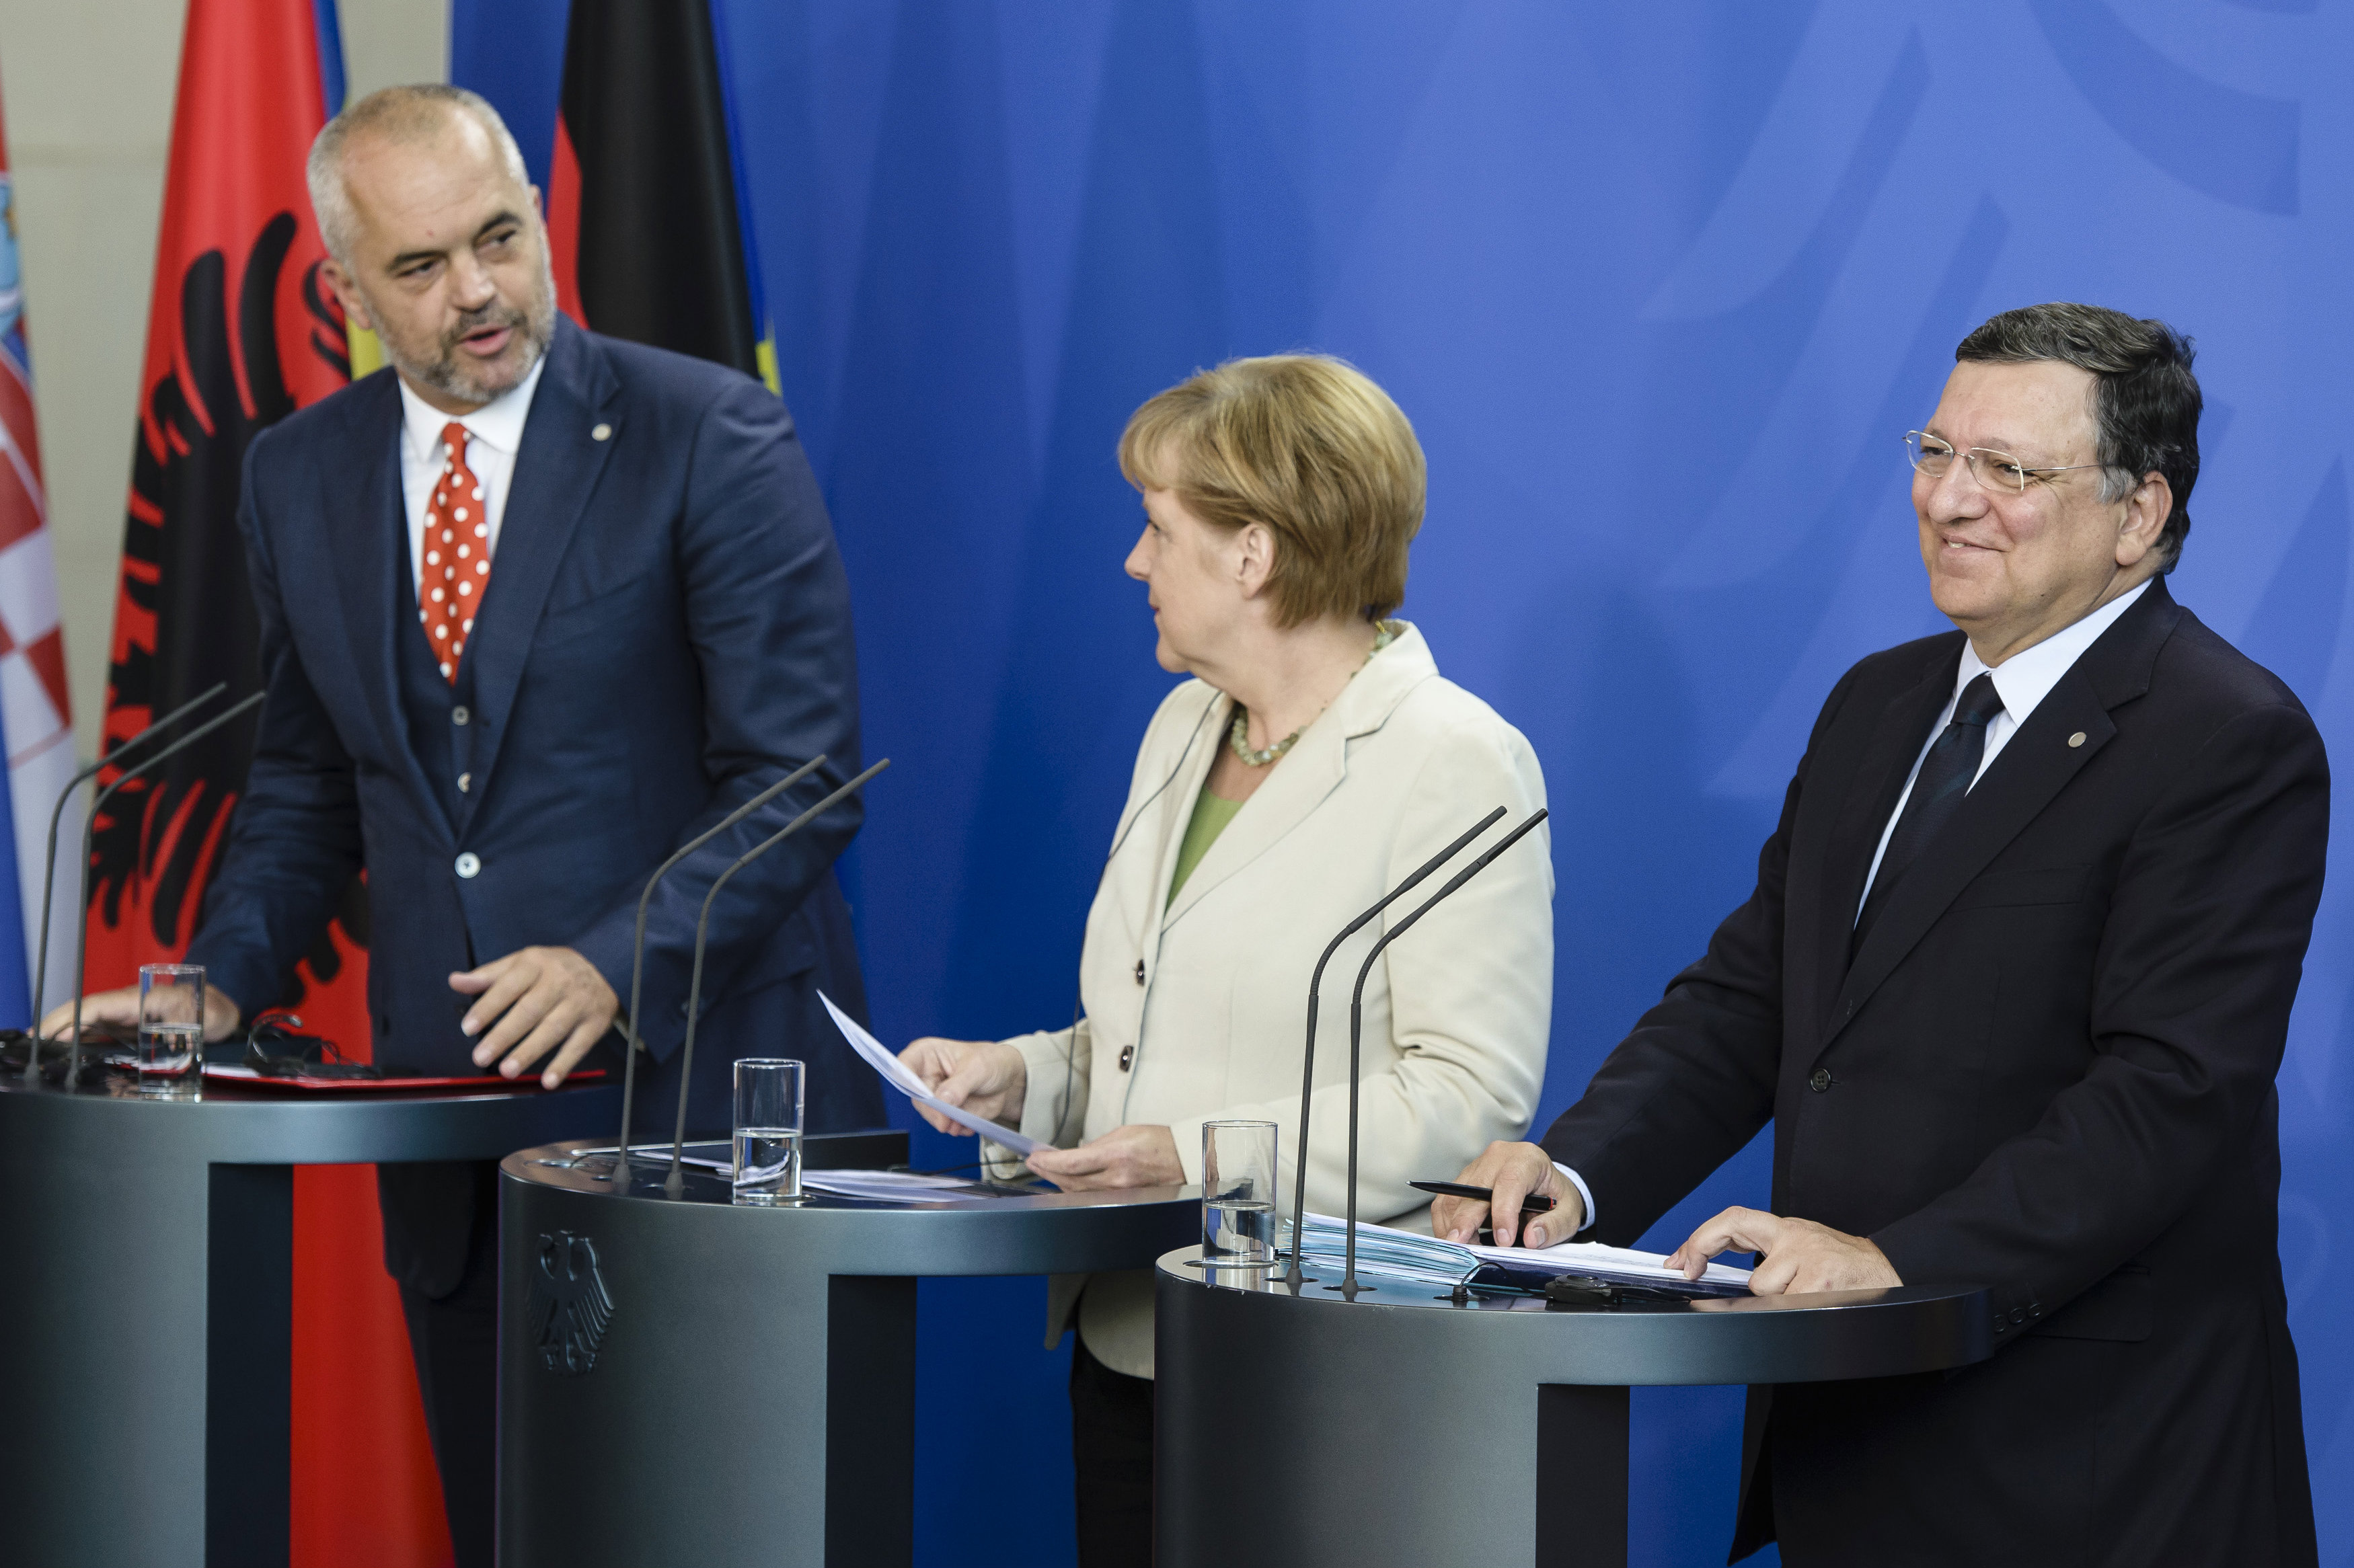 Albanian Prime Minister Edi Rama, German Chancellor Angela Merkel and European Commission President José Manuel Barroso hold a joint press conference at the Western Balkans Conference in Berlin on Thursday (28 August). [EC]